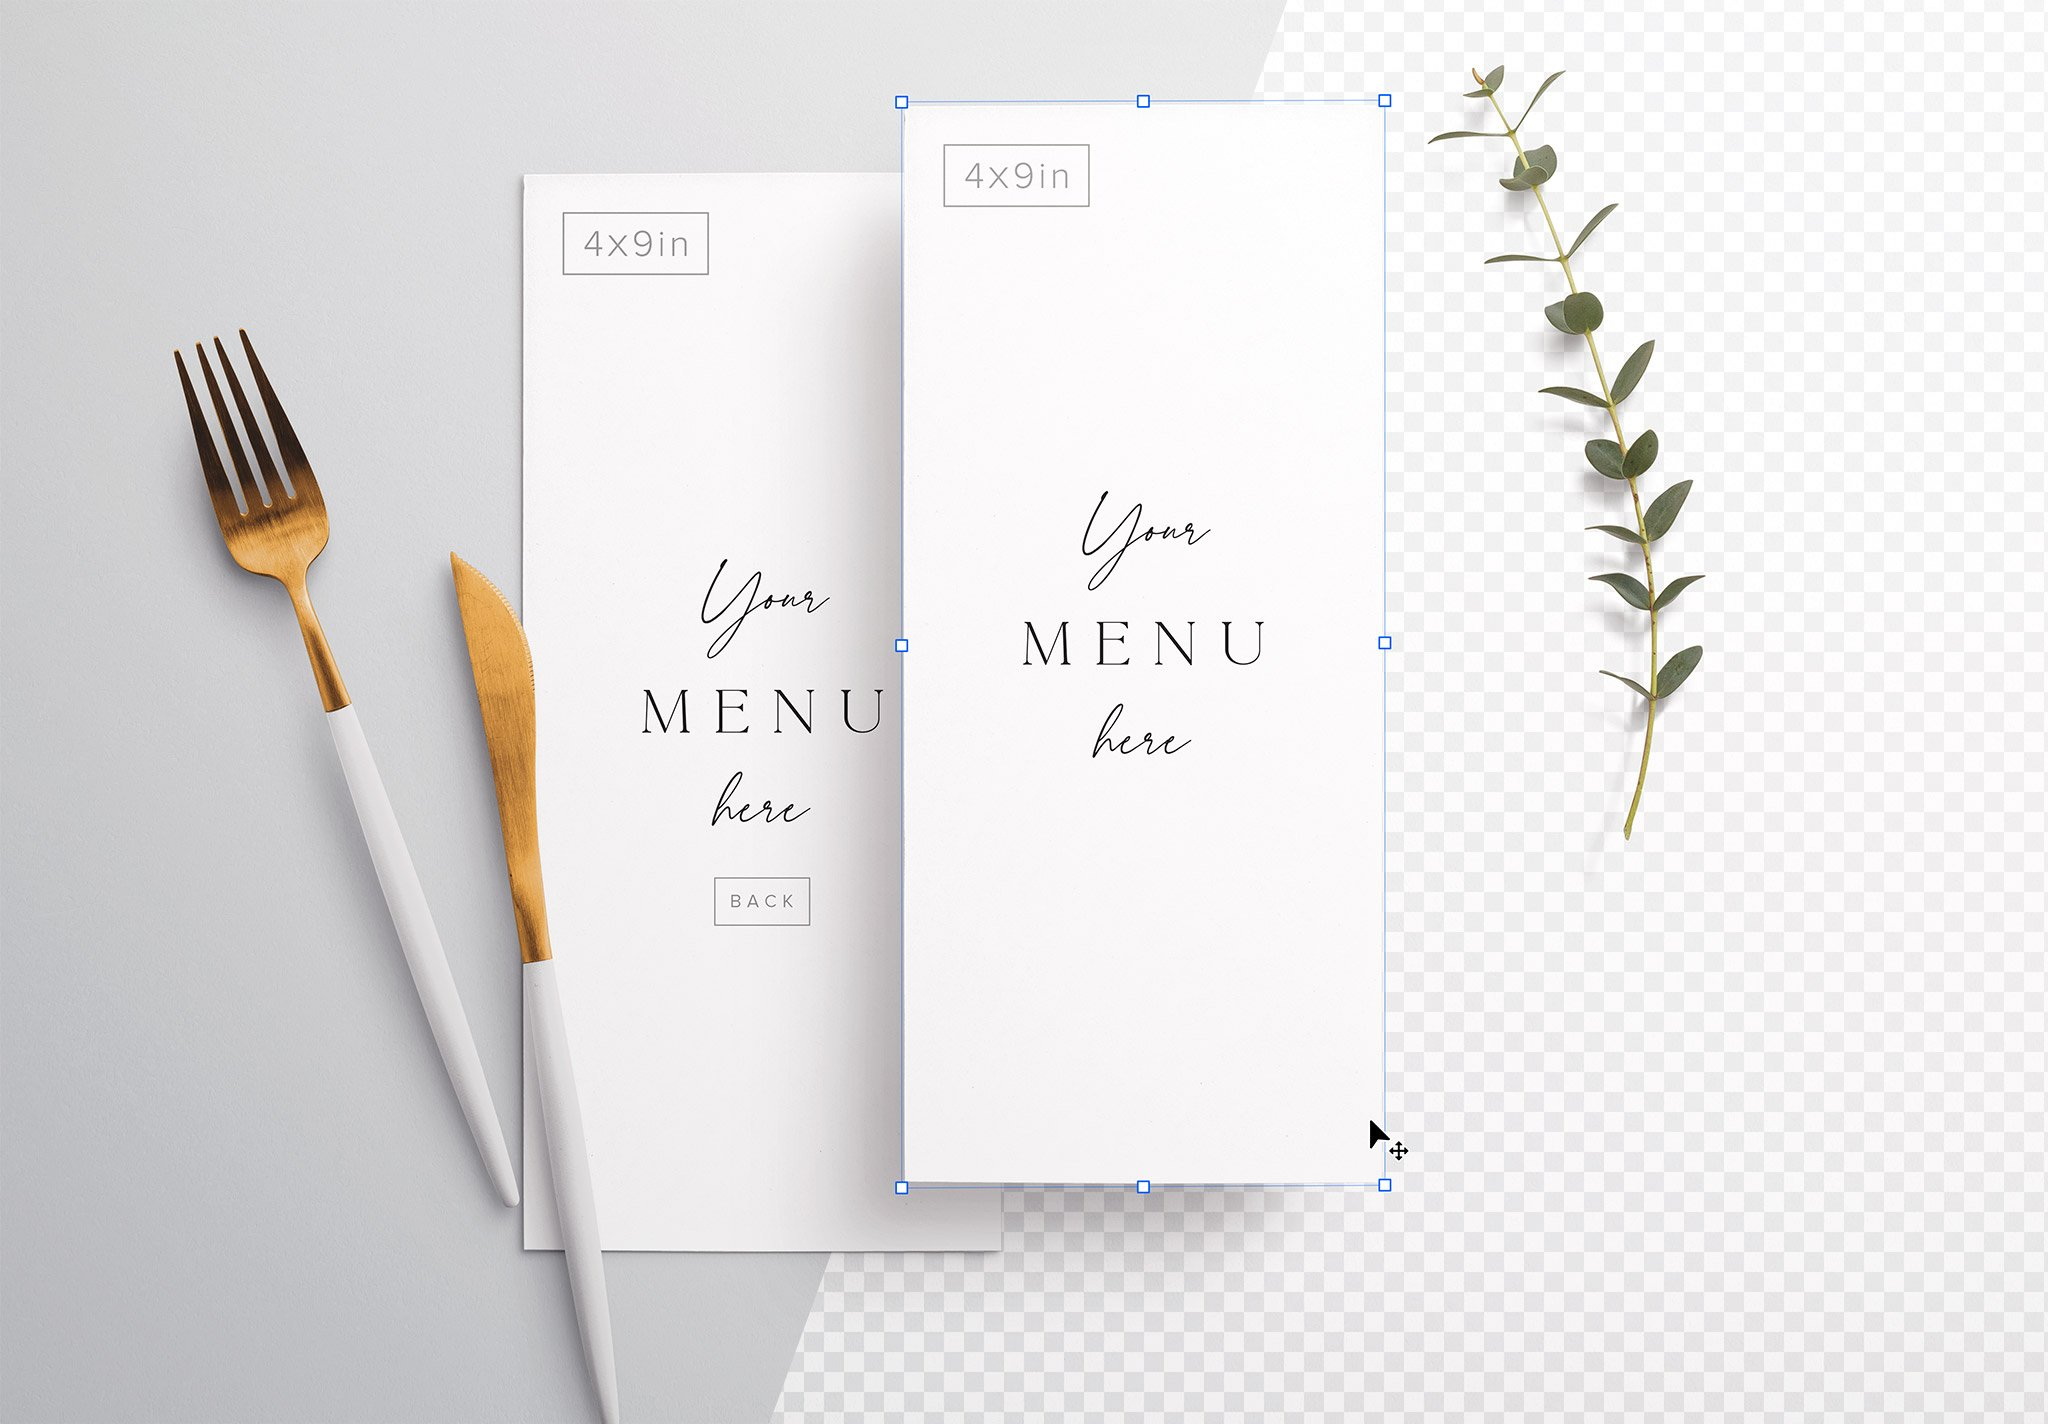 Table 4X9In Menu with Cutleries And Eucalyptus Image01